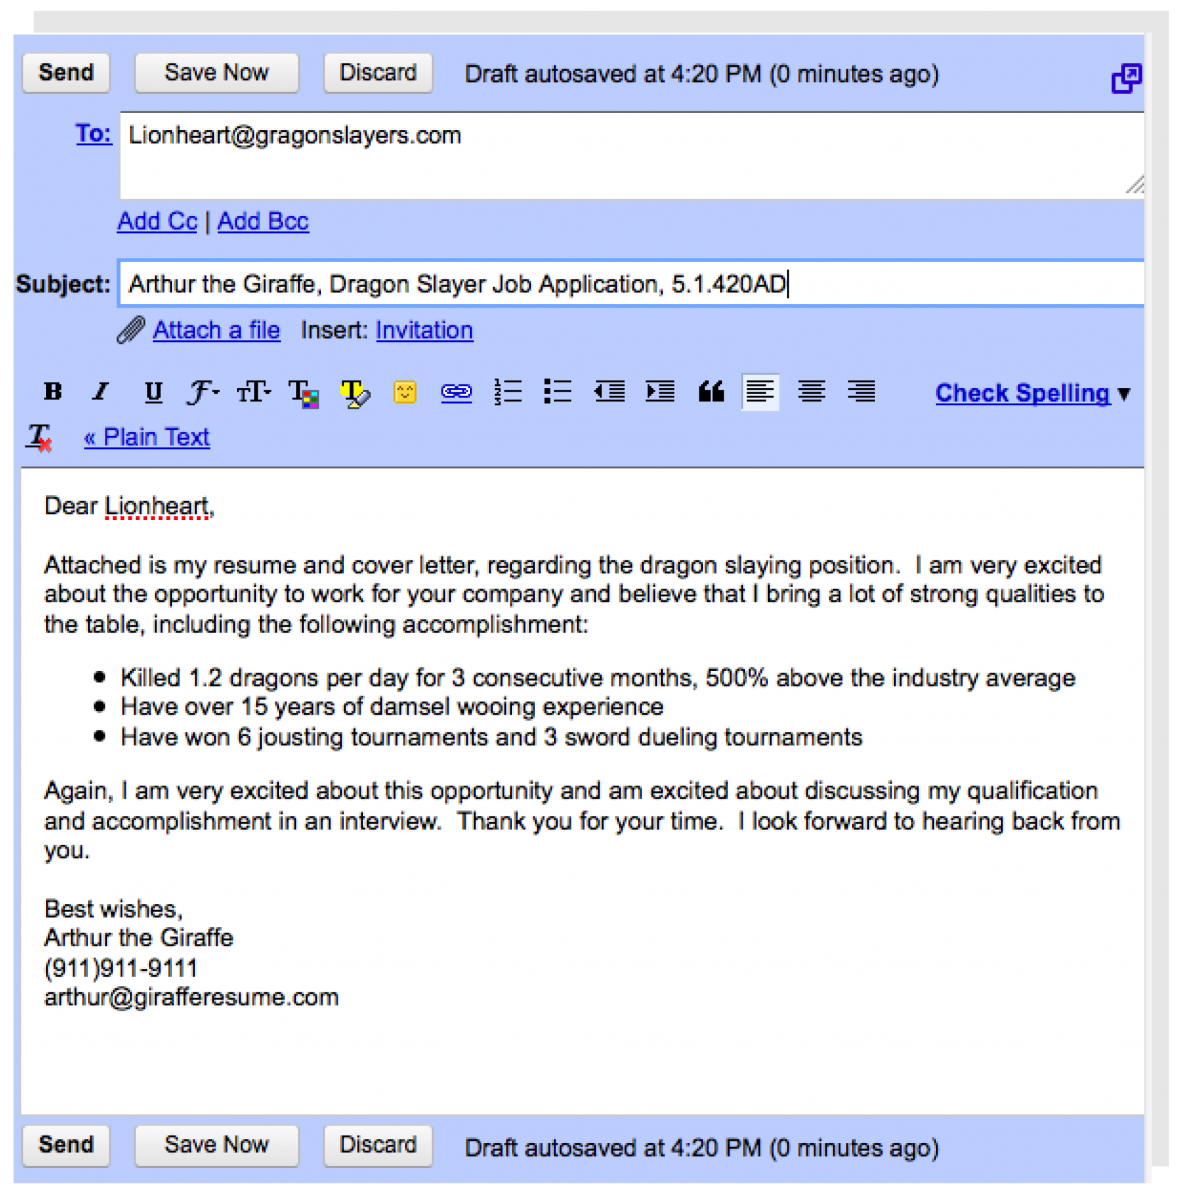 What to say in email when sending resume and cover letter